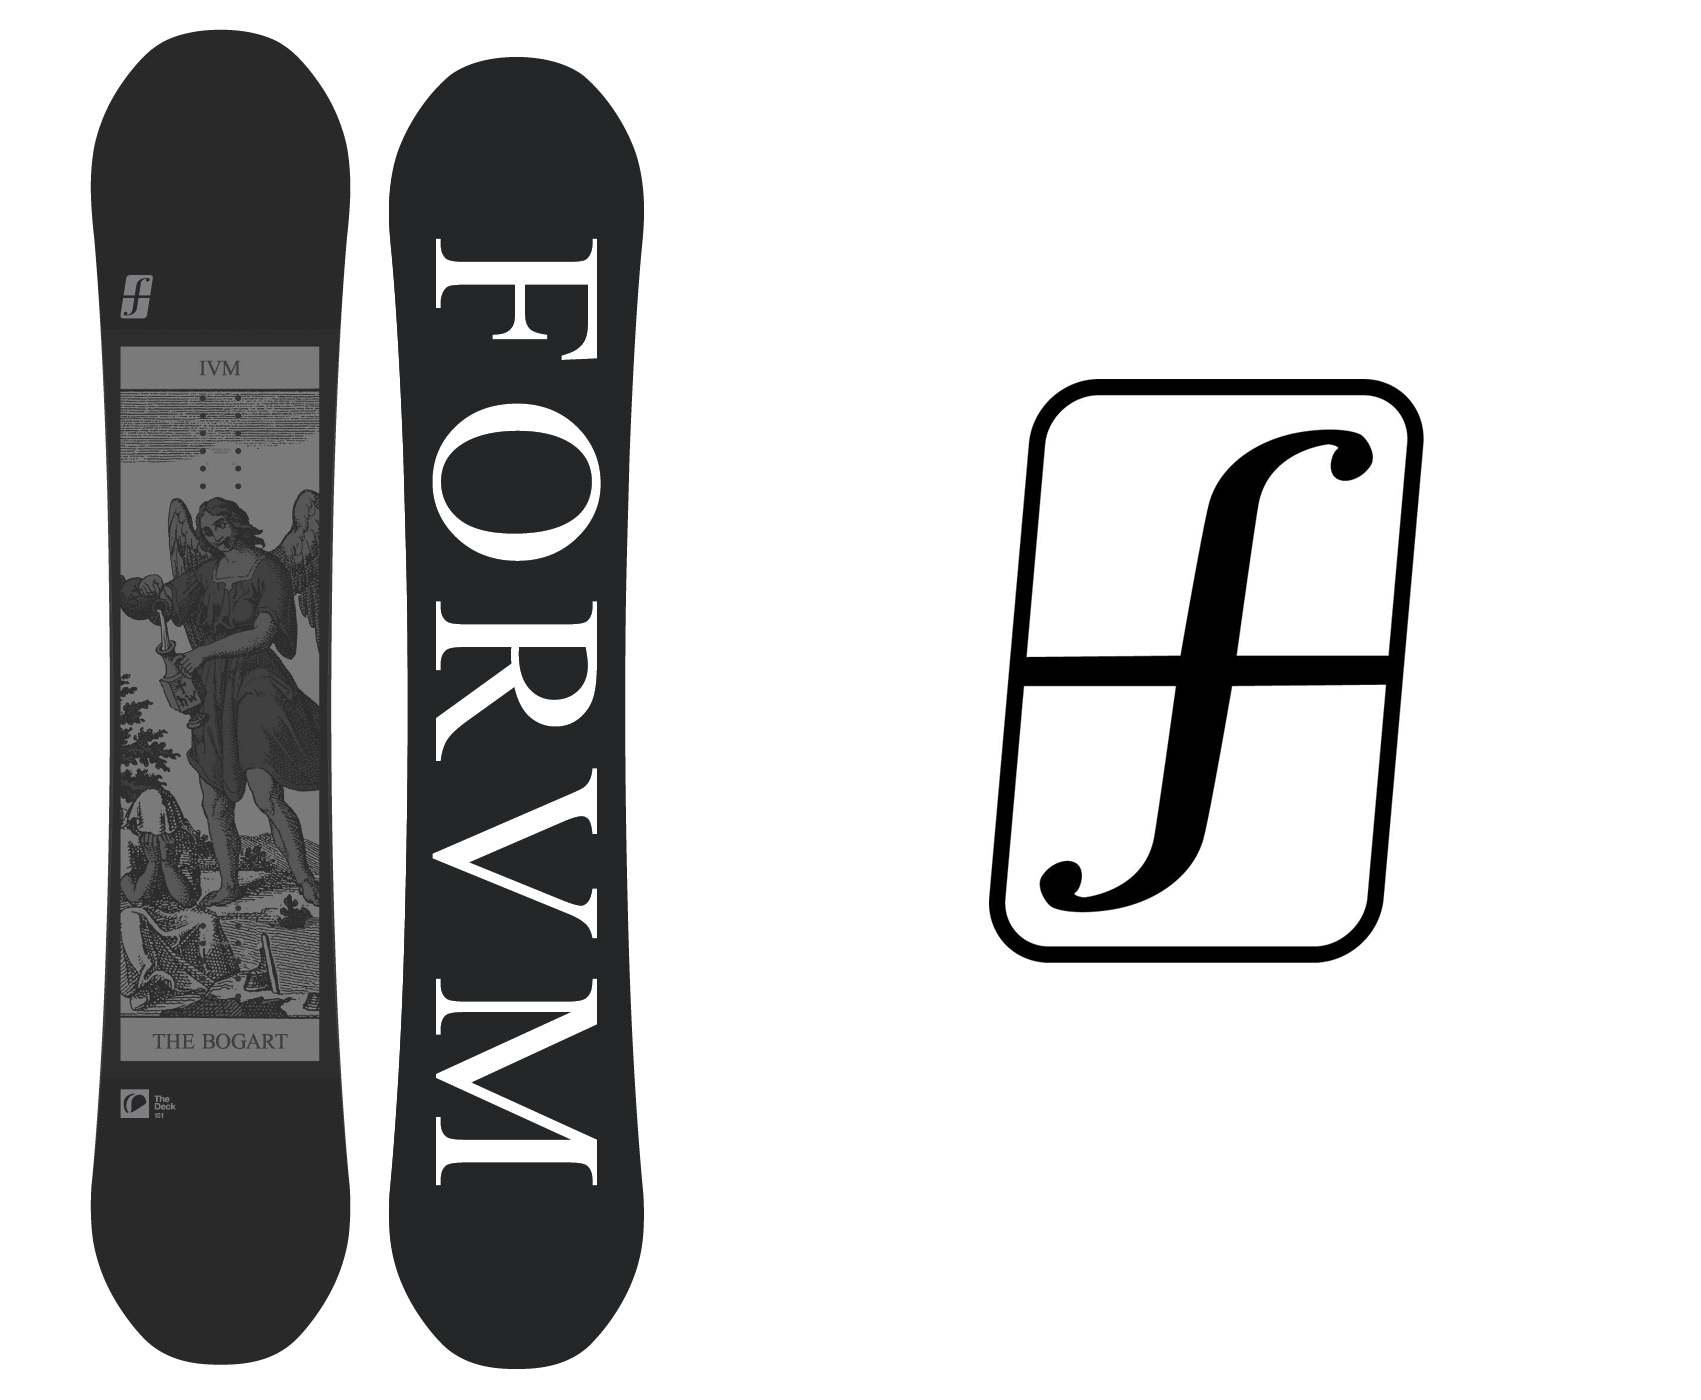 Product Of The Day! Forum Deck Snowboard (£339.00)